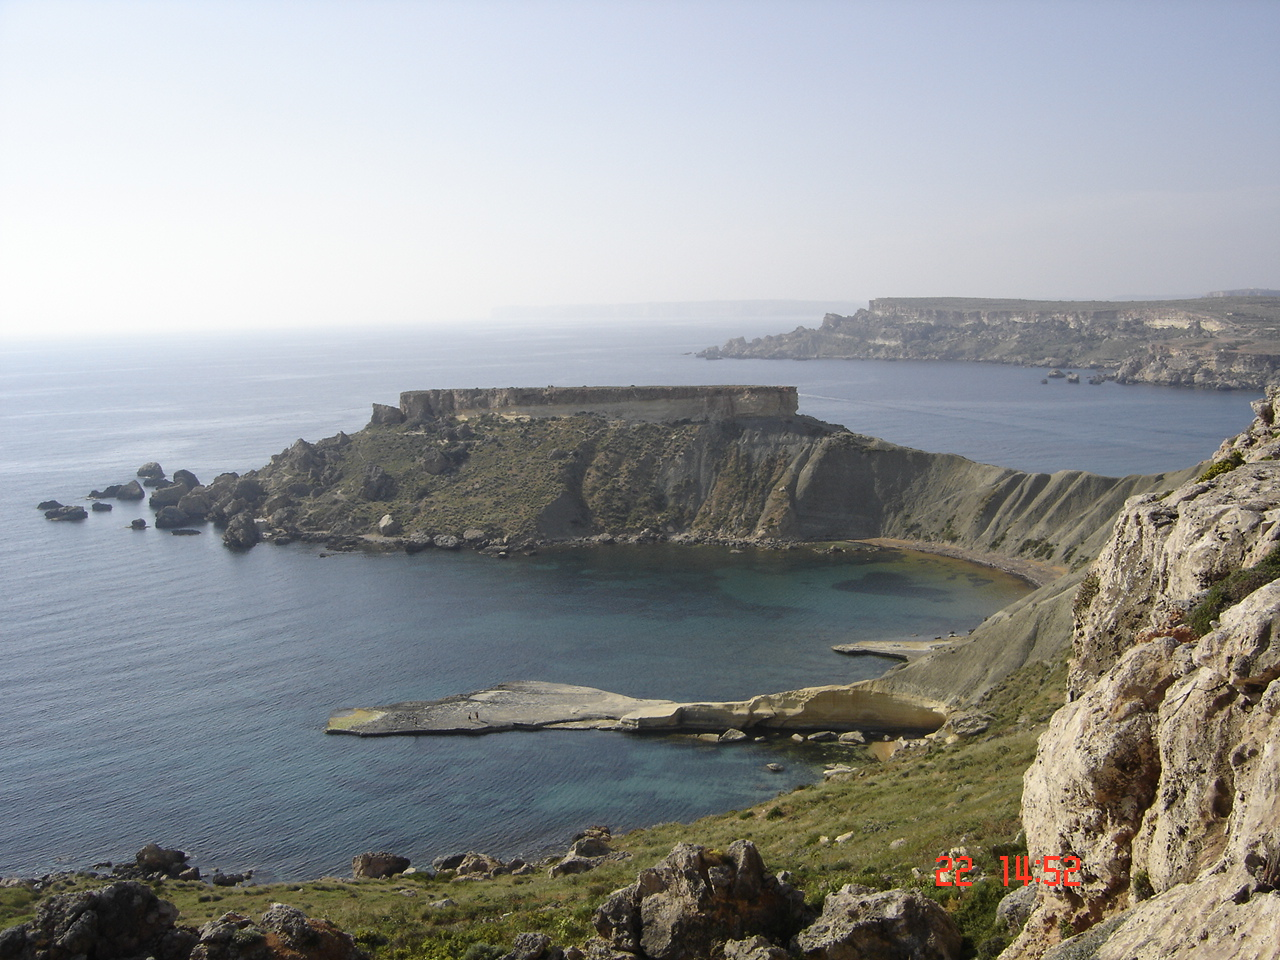 Malta Coastal walk